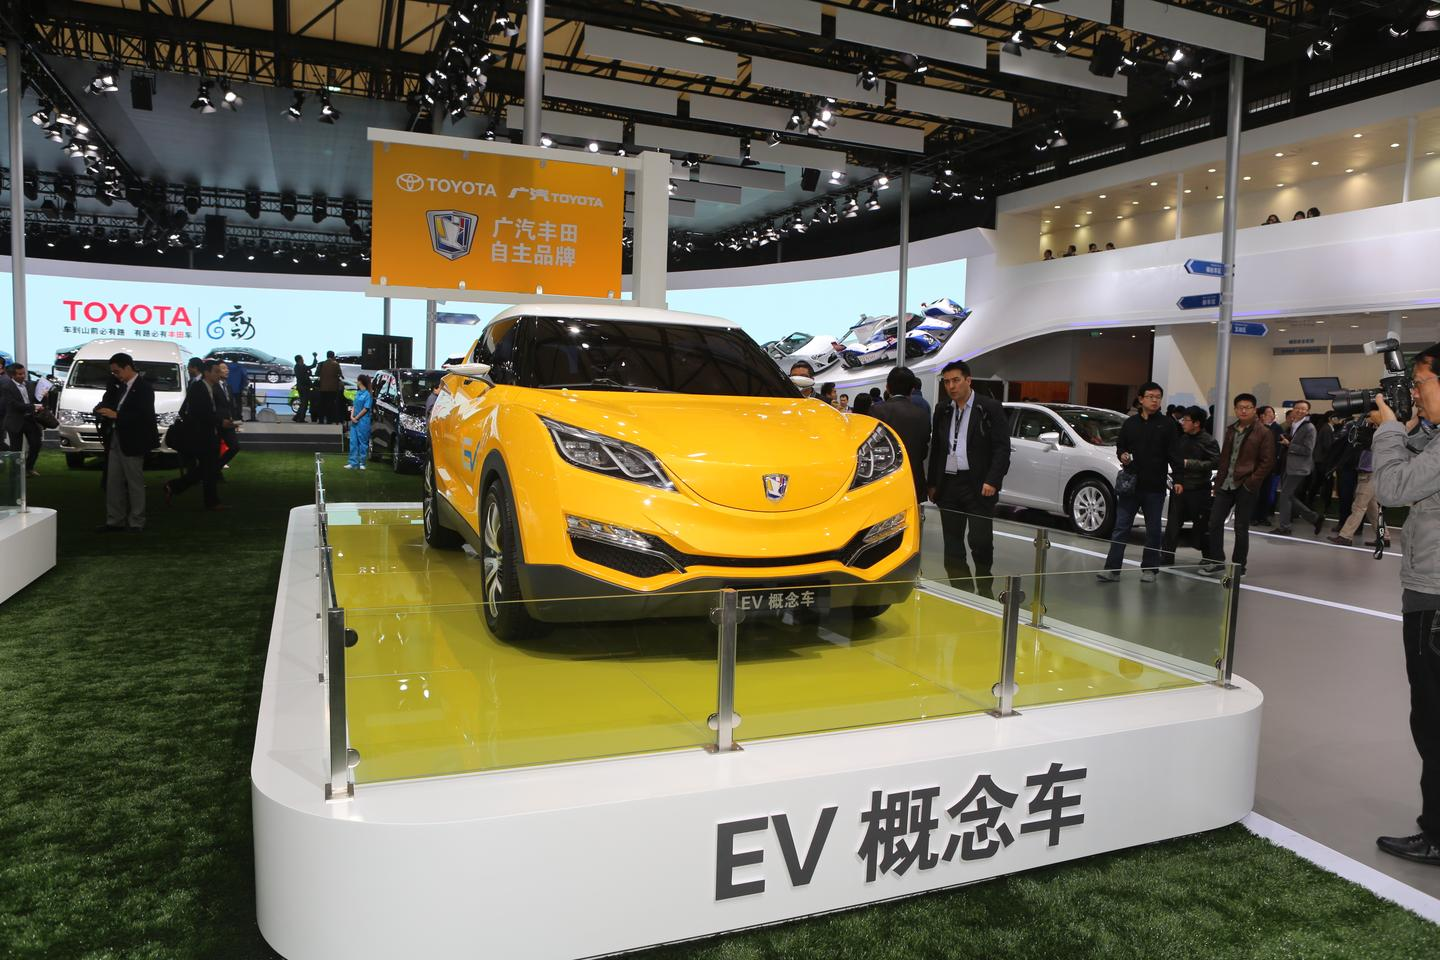 Guangzhou-Toyota Group presented this mid size EV SUV in Shanghai